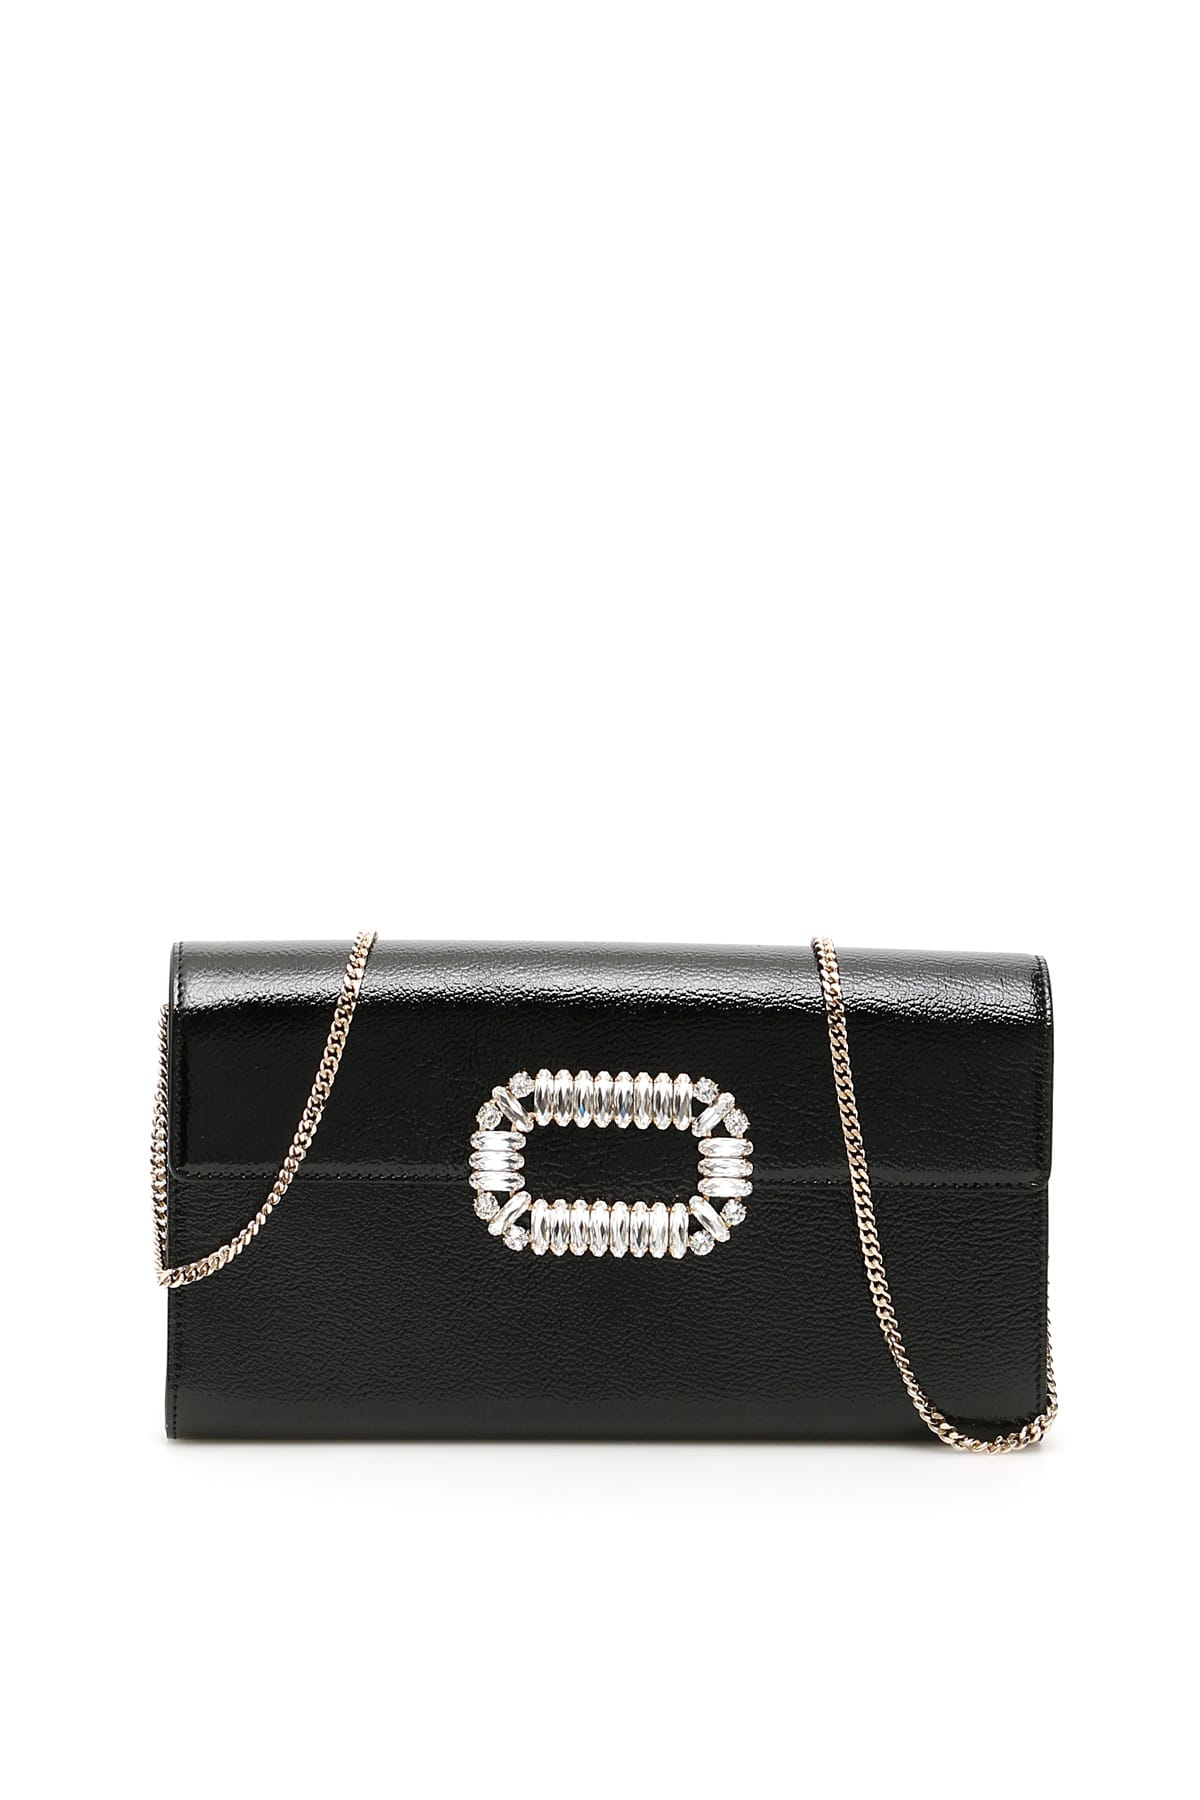 Roger Vivier Crystal Buckle Envelope Clutch